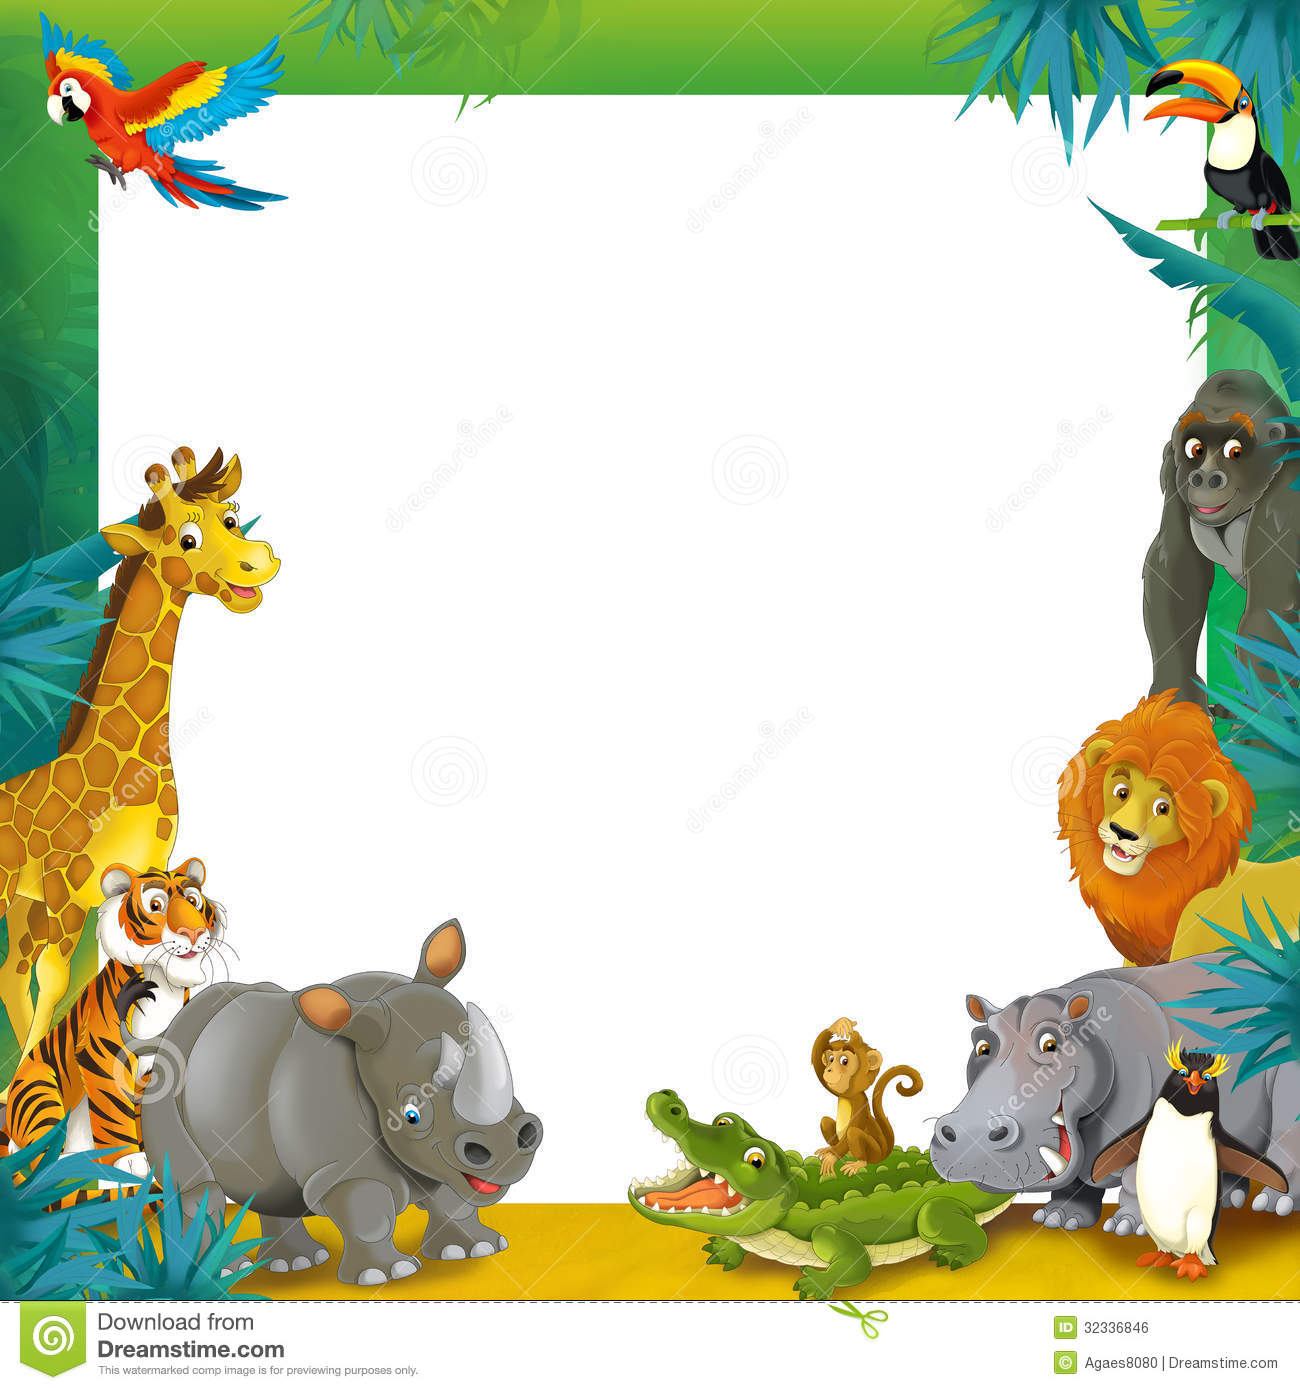 cartoon safari jungle frame border template disney wedding clipart free Disney Wedding Signs